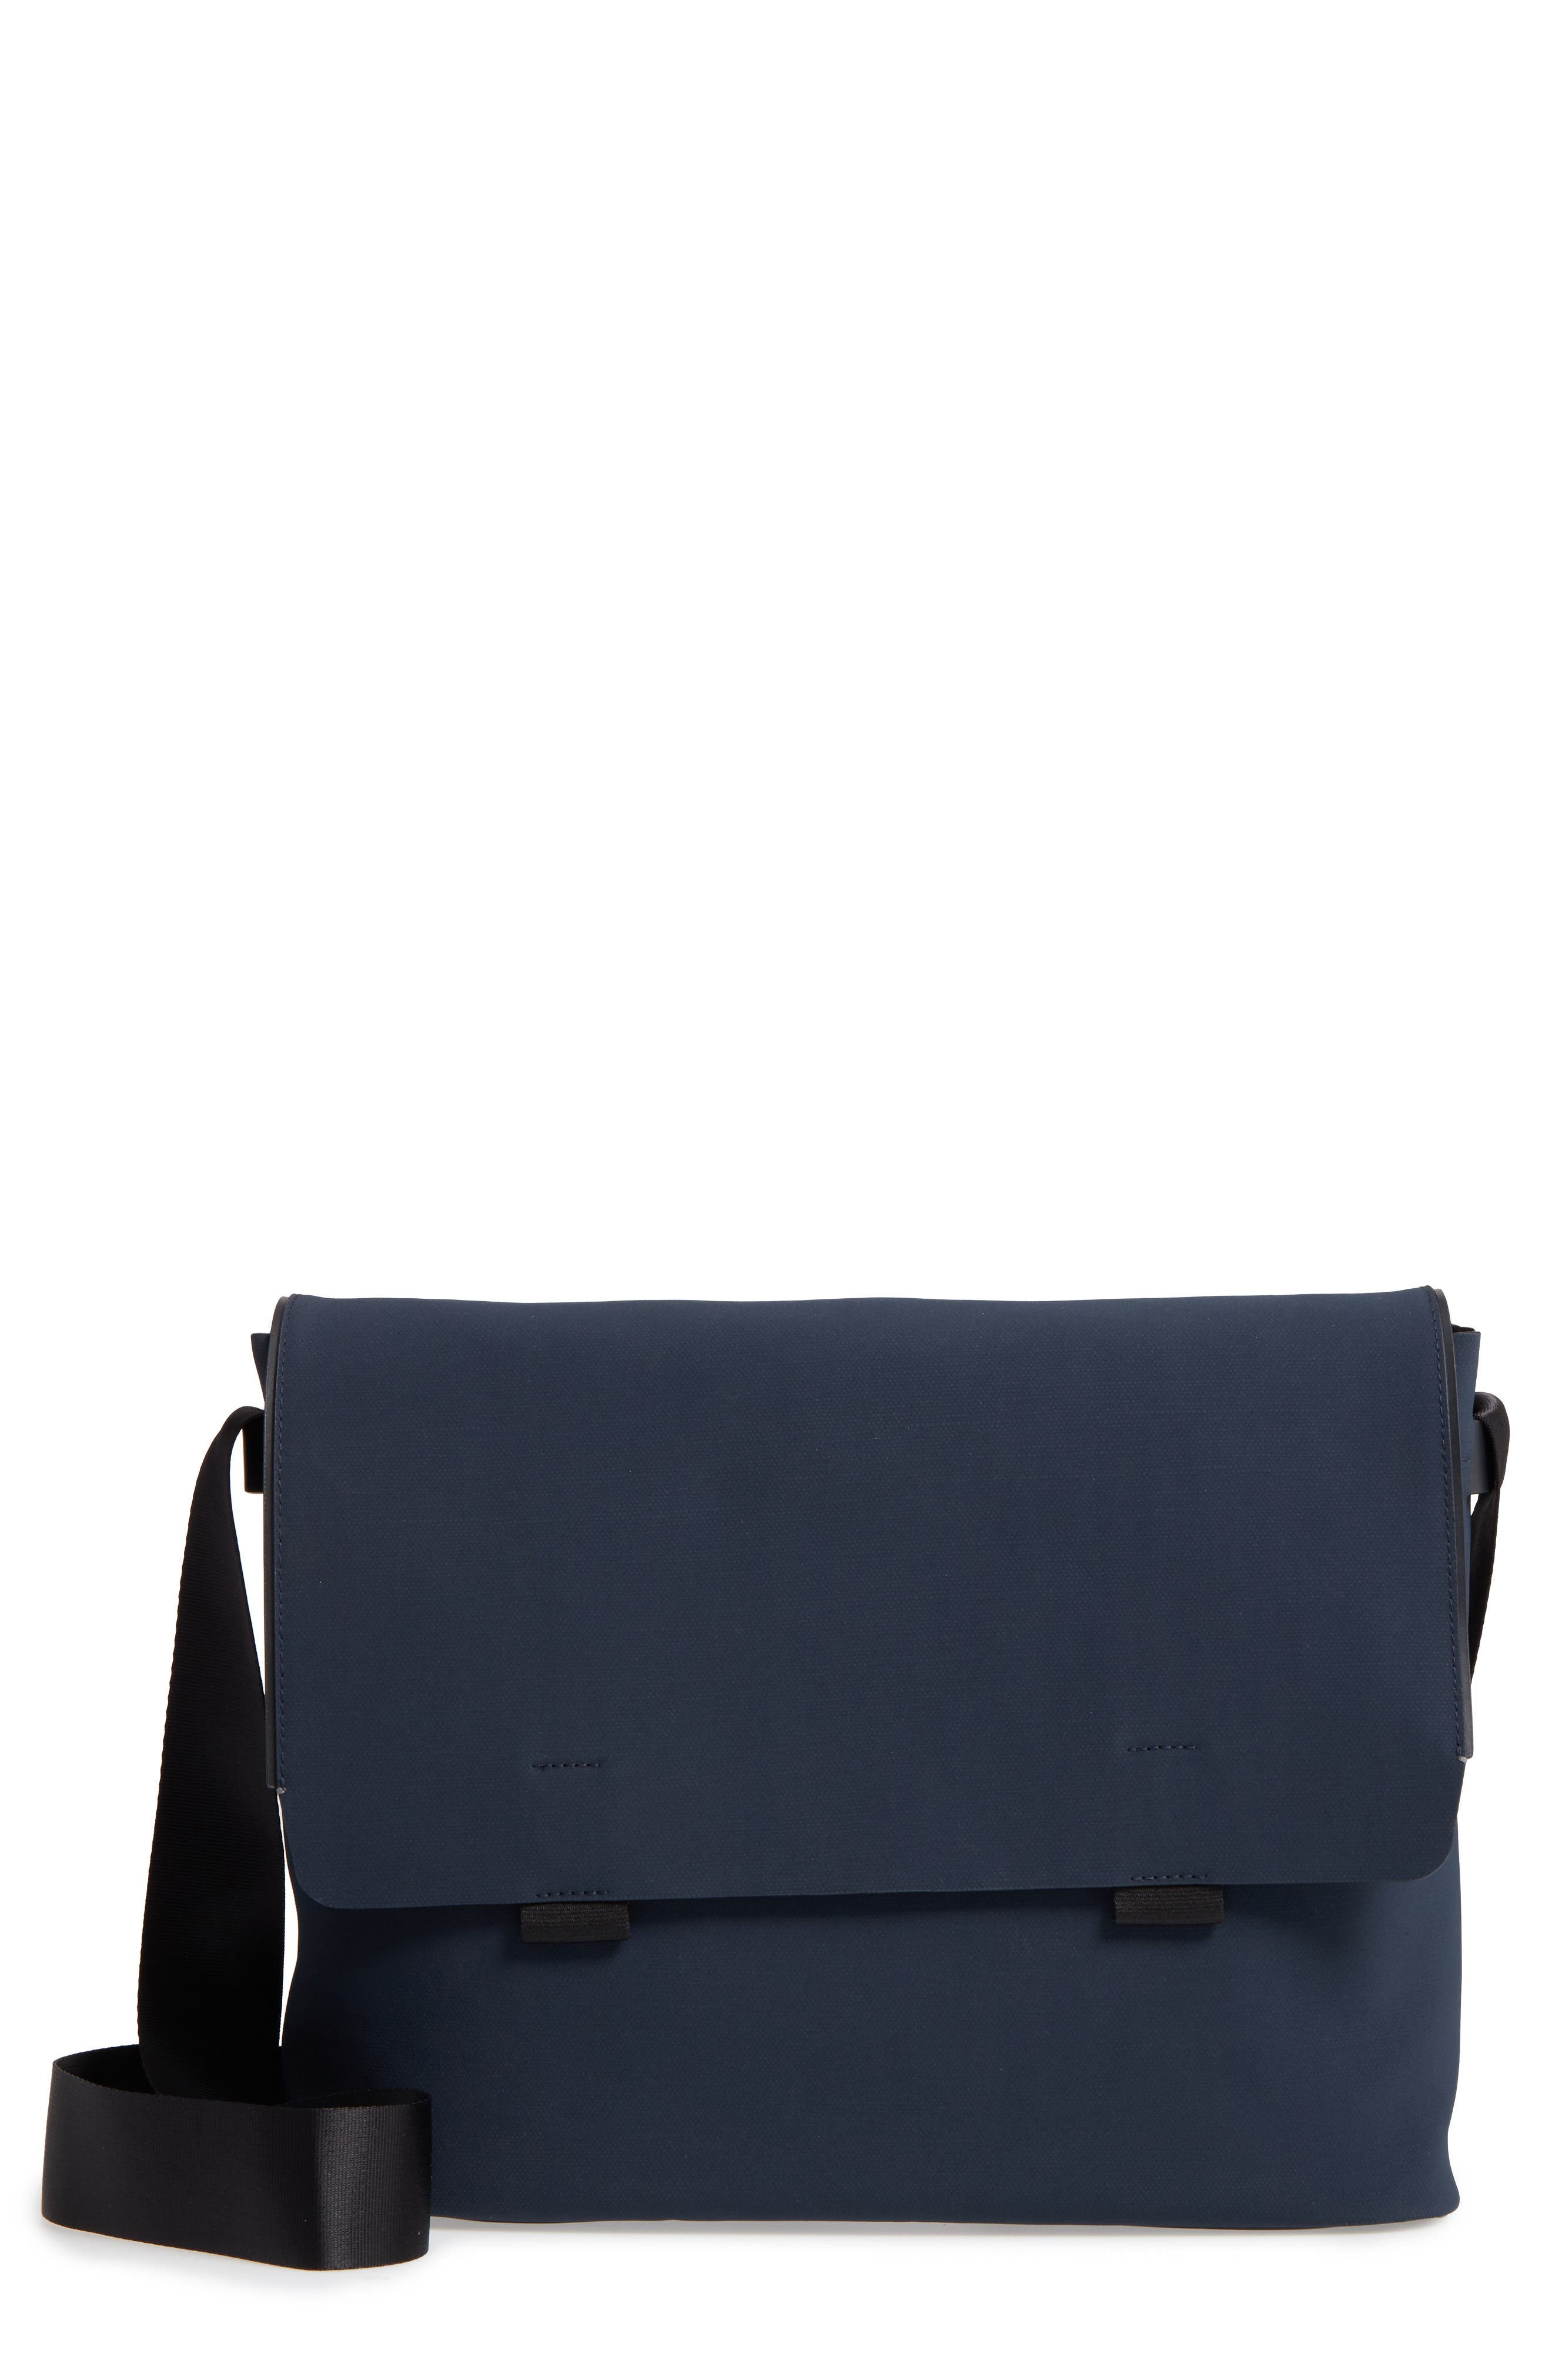 Canvas Messenger Bag,                             Main thumbnail 1, color,                             Navy Canvas/ Navy Leather